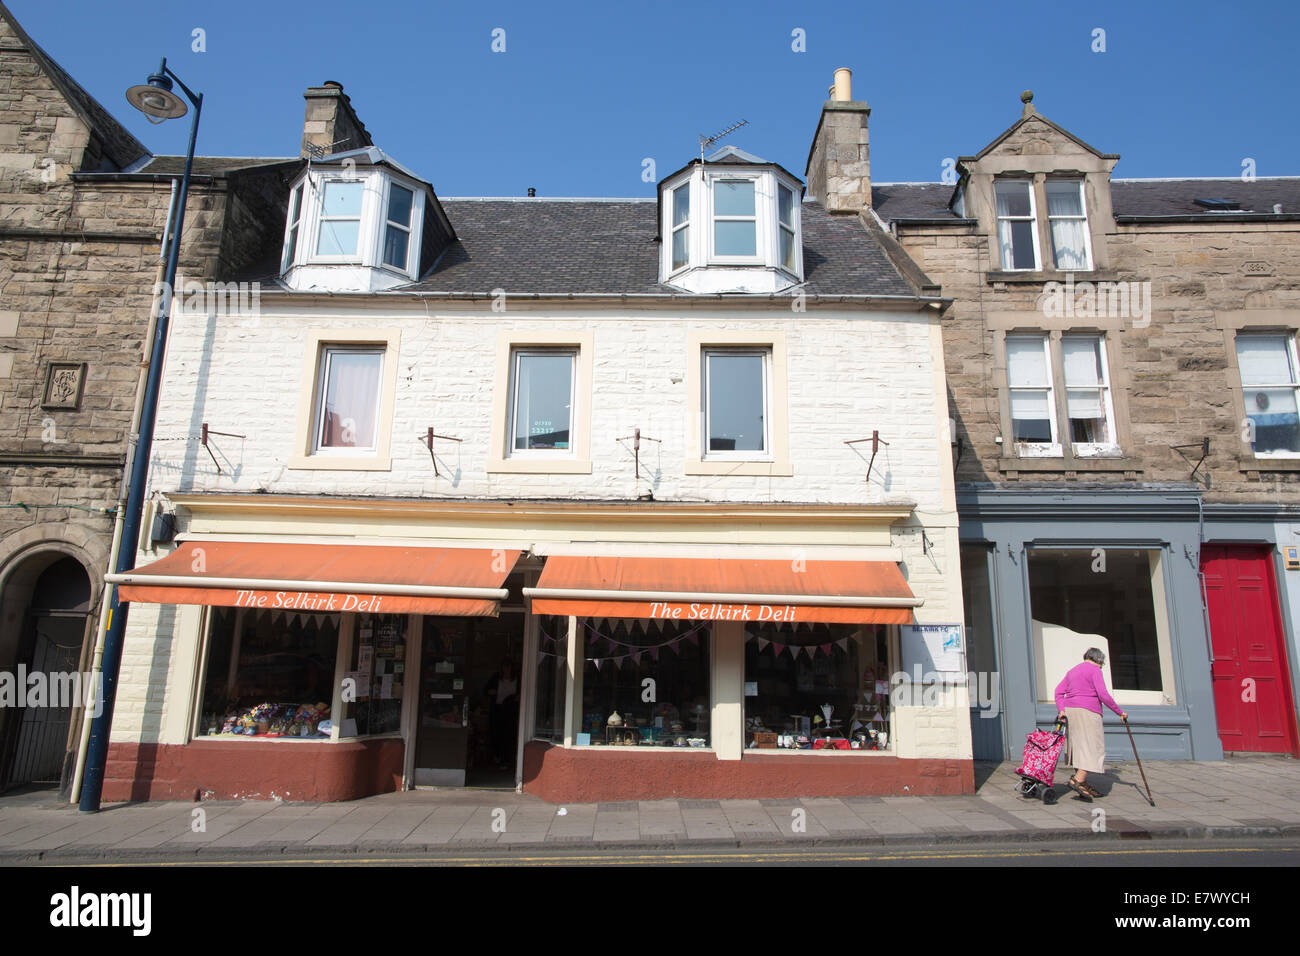 Shops on the high street of Selkirk, The Royal and Ancient Burgh of Selkirk, Scottish Borders, Scotland, UK - Stock Image